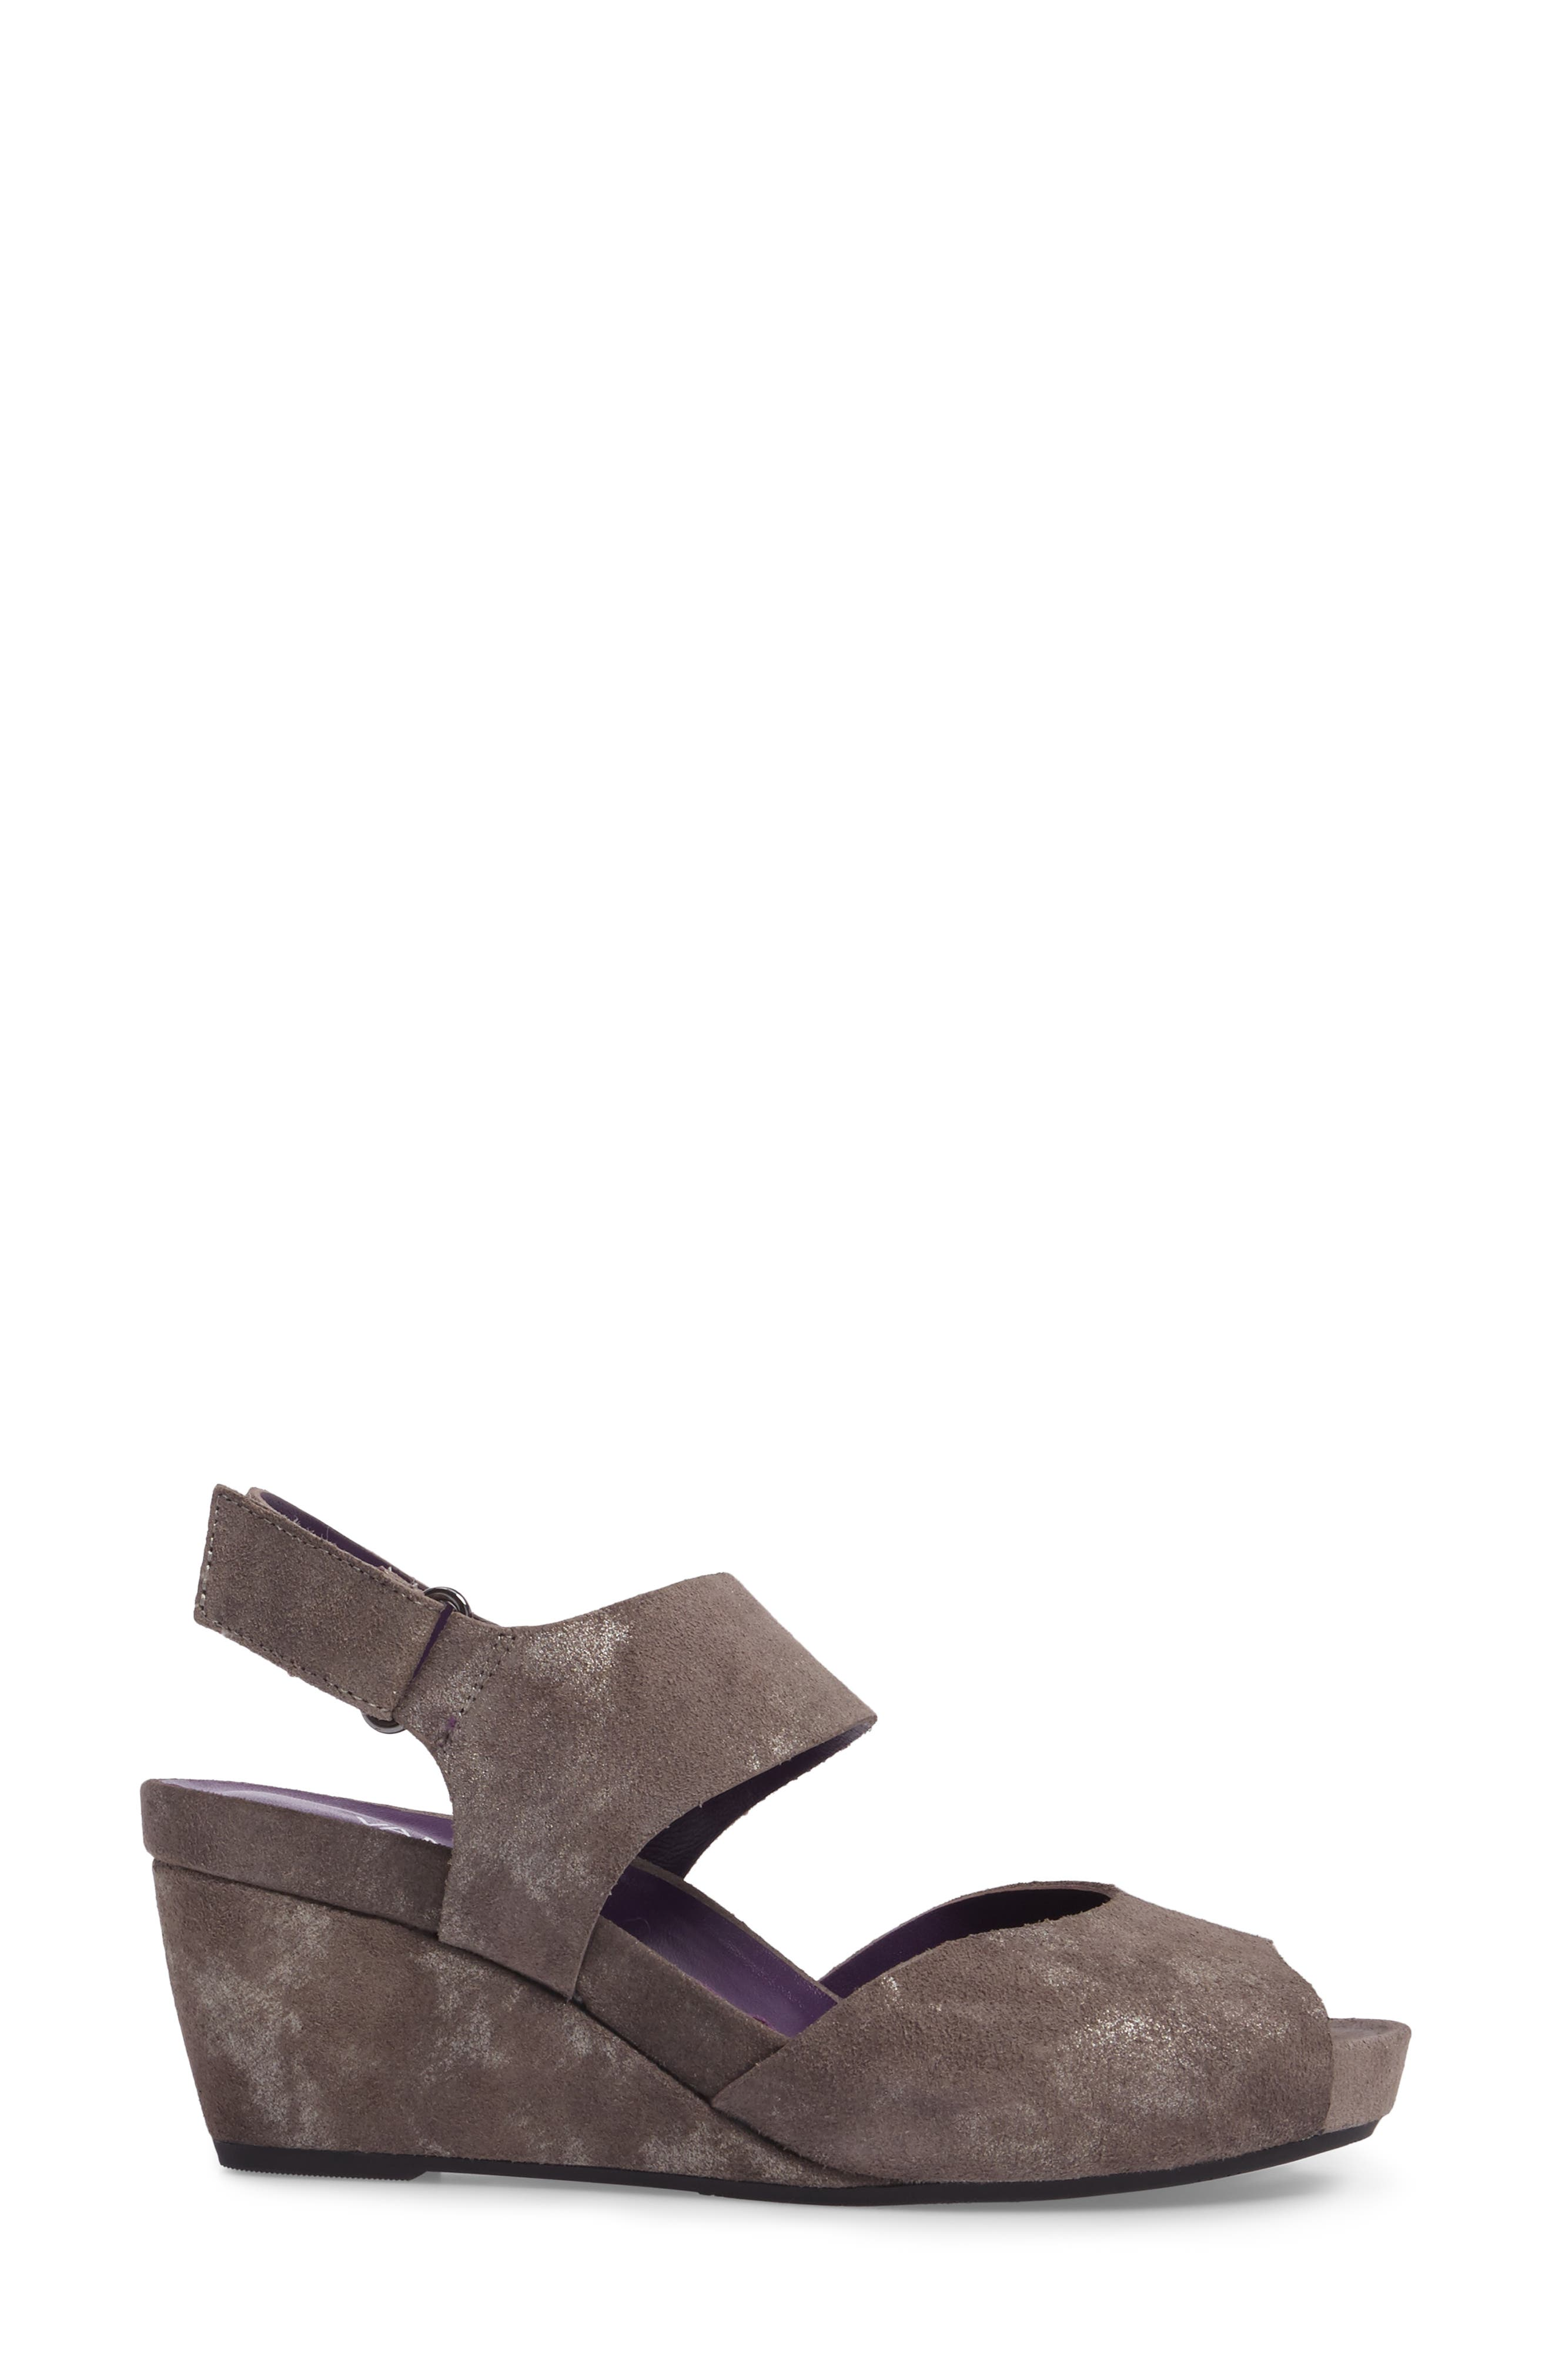 Ilex Wedge Sandal,                             Alternate thumbnail 3, color,                             Taupe Suede